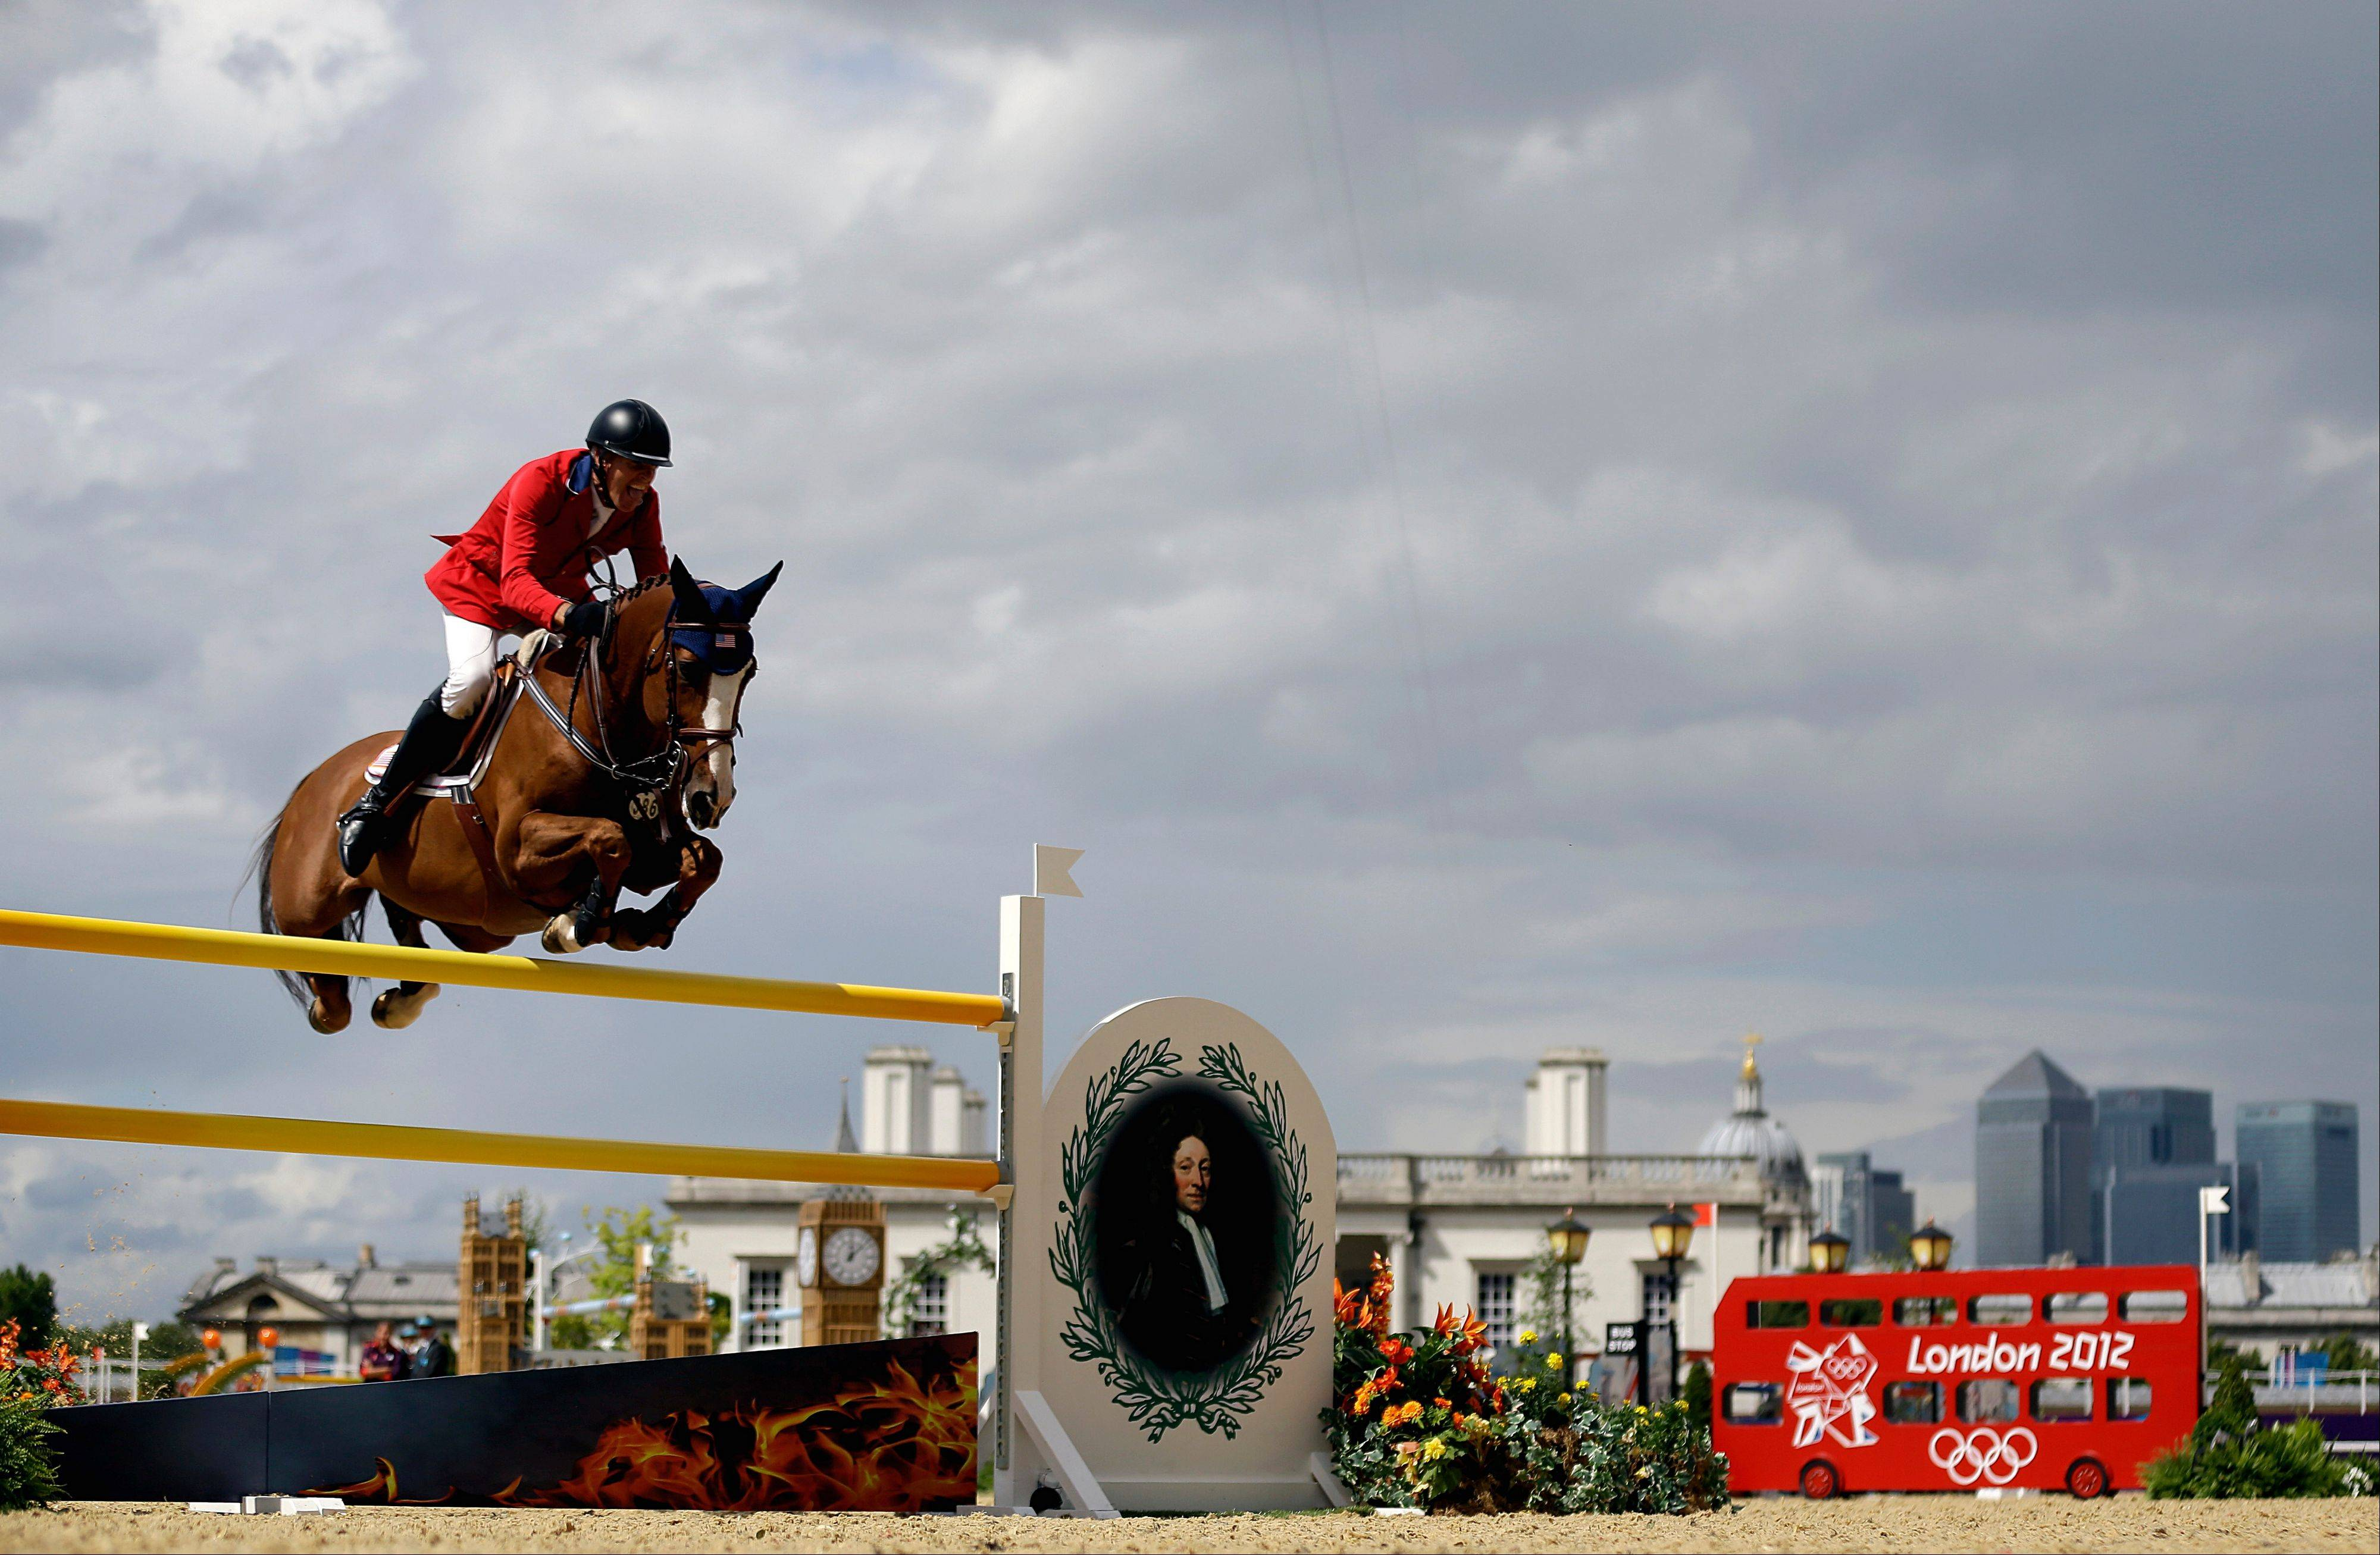 Richard Fellers, of the United States, rides his horse Flexible in the equestrian show jumping team competition at the 2012 Summer Olympics, Sunday, Aug. 5, 2012, in London.